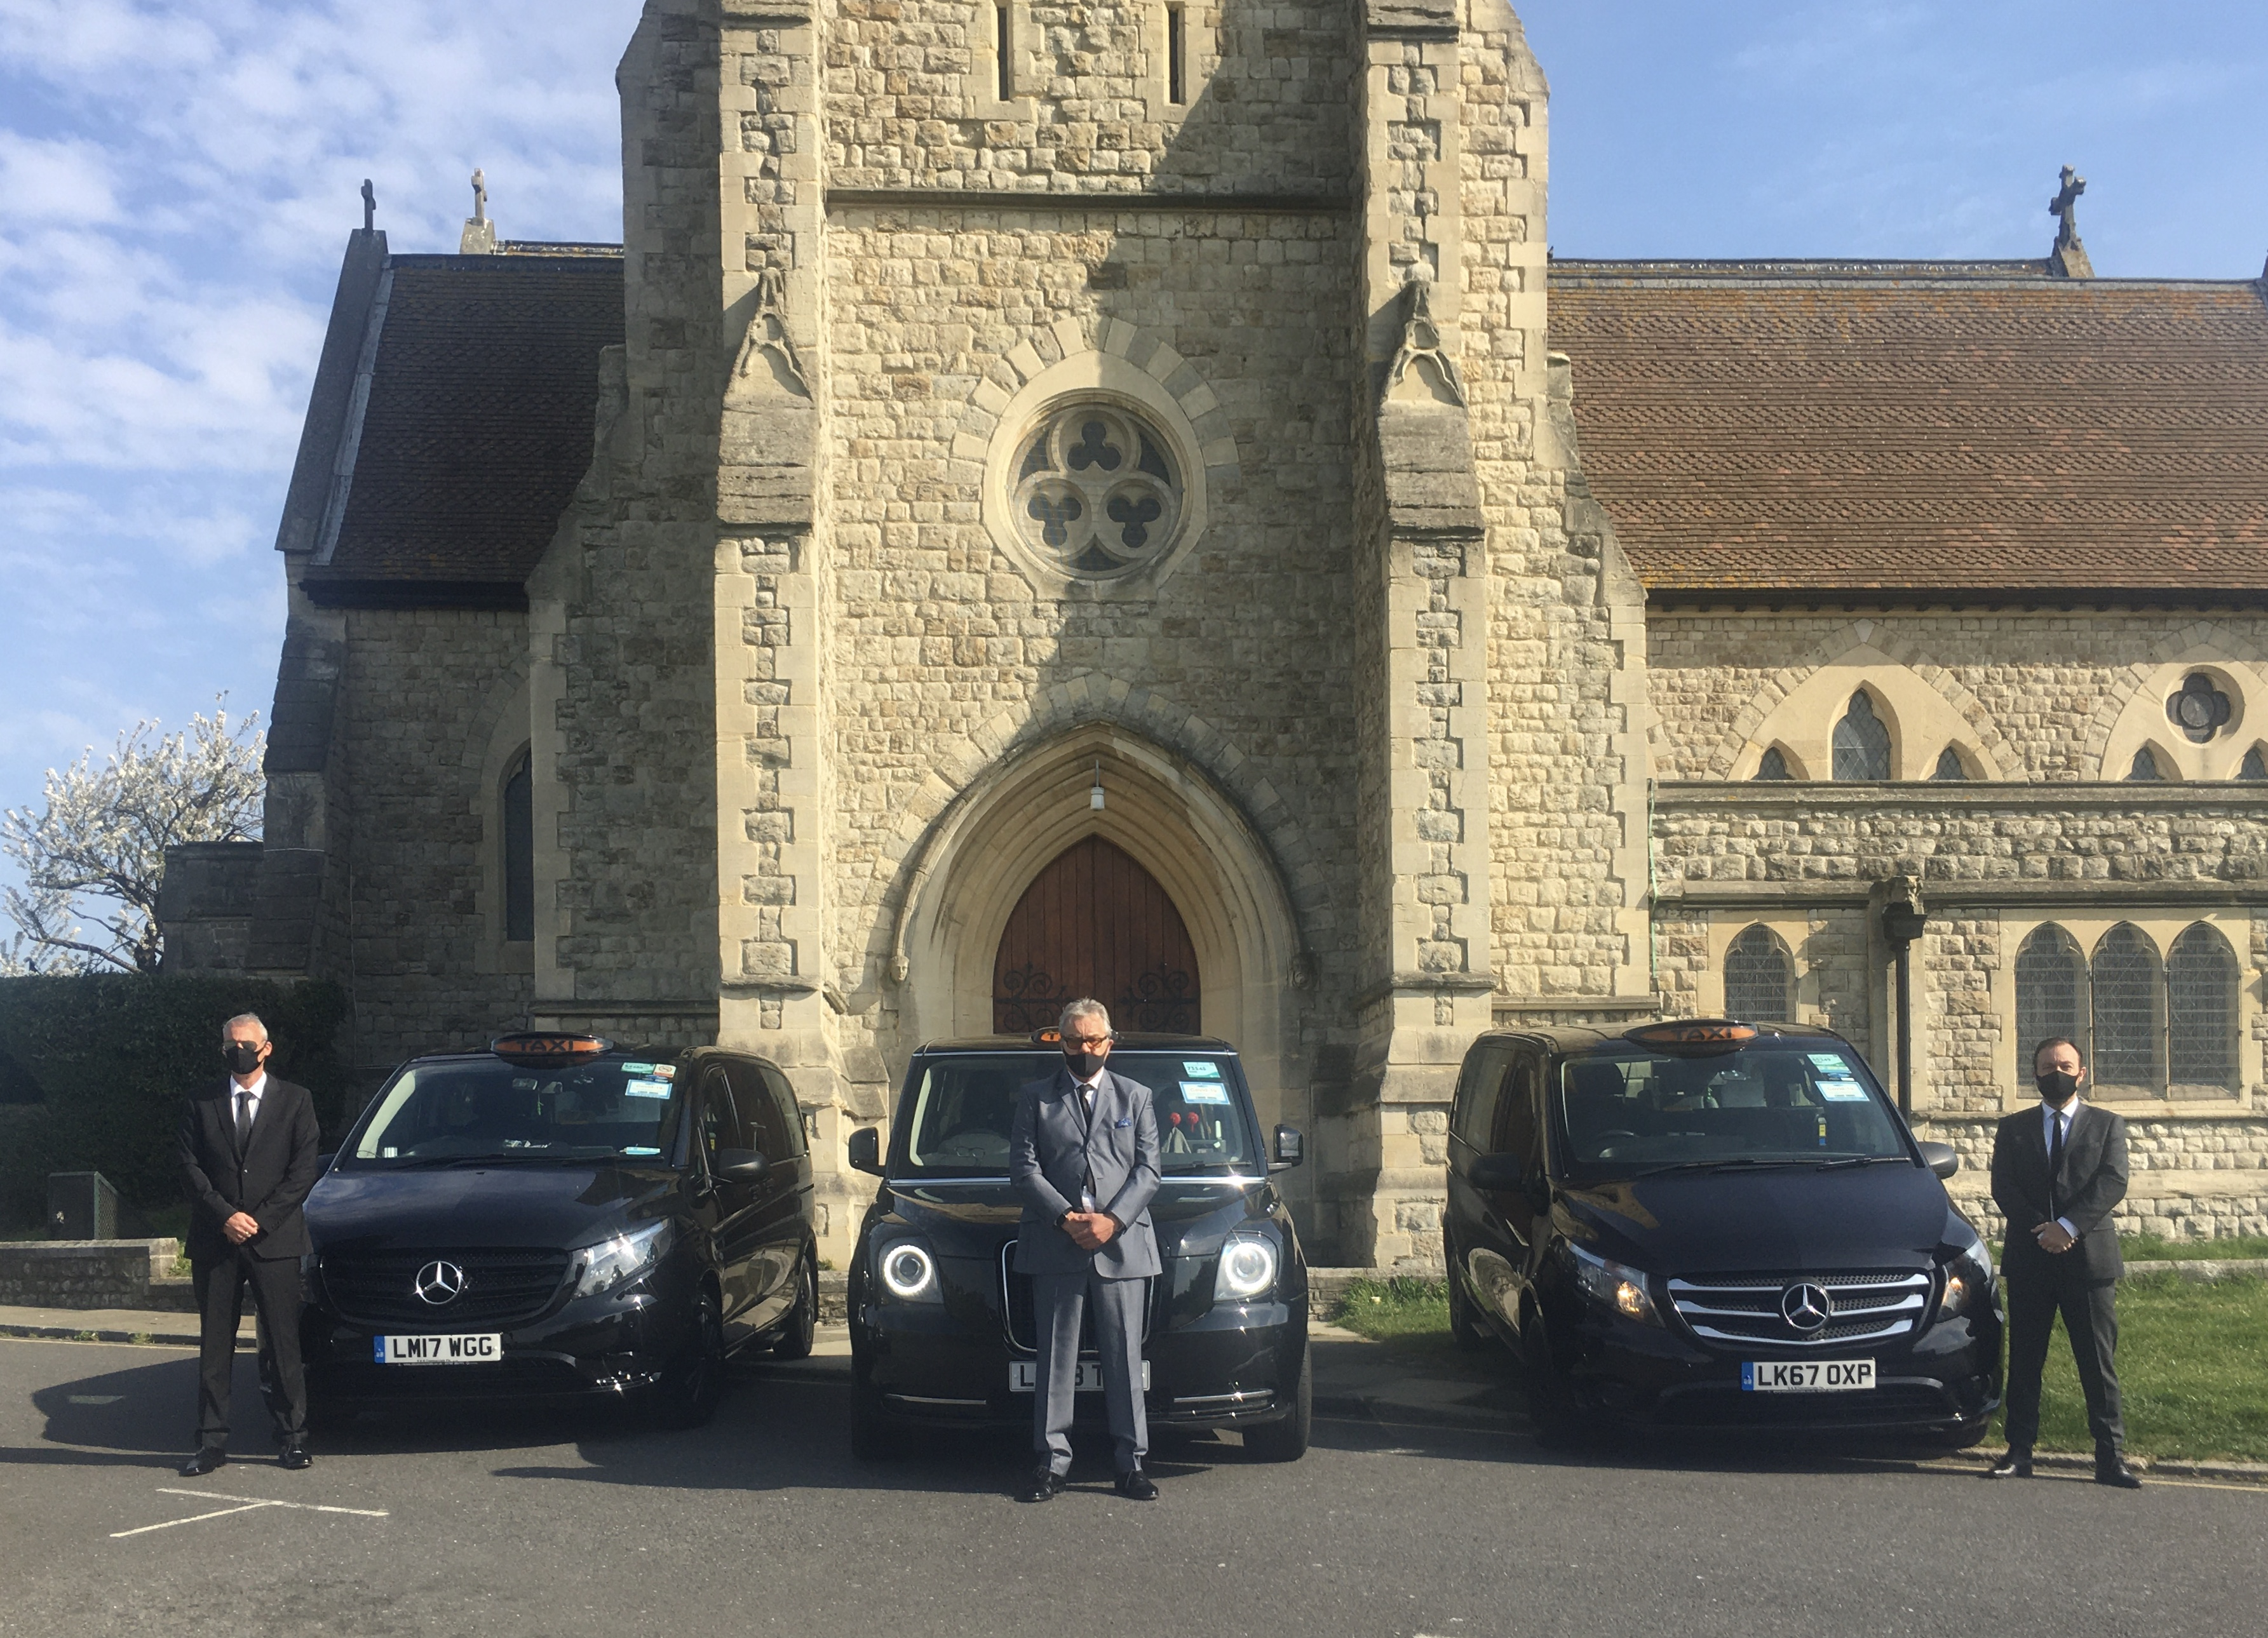 London\'s taxis are being used as funeral cars as the Covid-19 death toll continues to rise